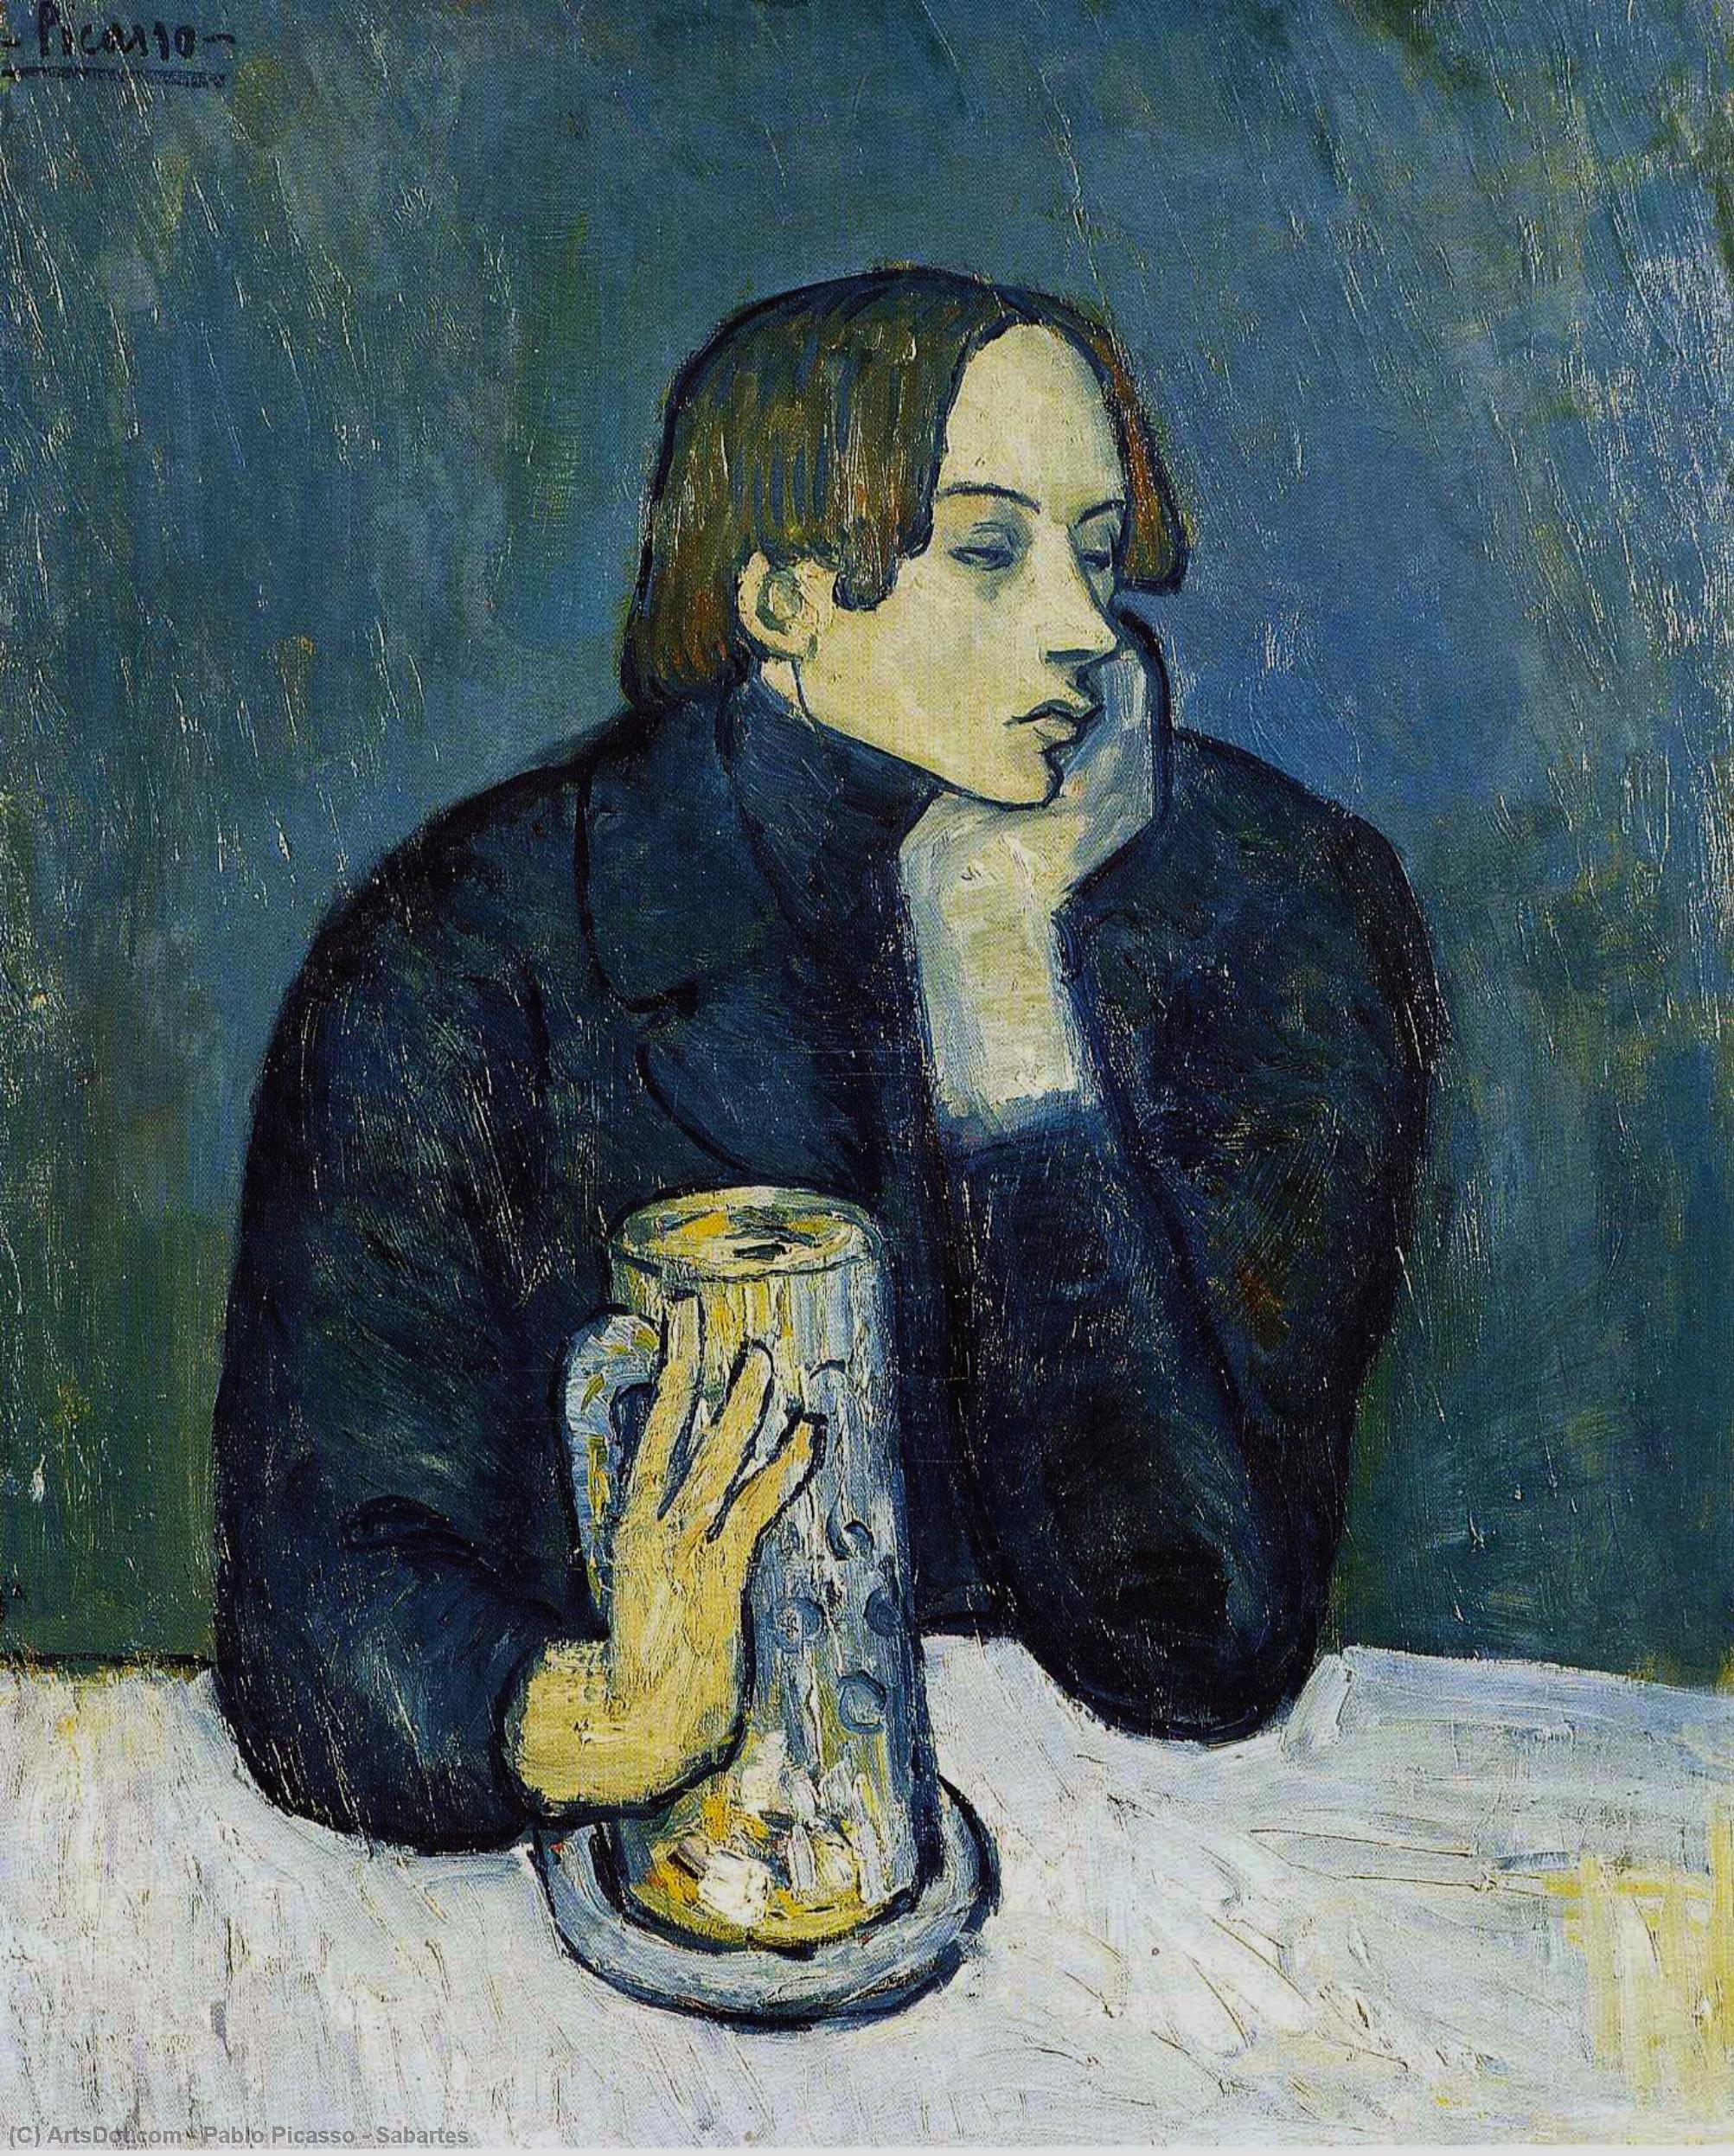 Wikioo.org - The Encyclopedia of Fine Arts - Painting, Artwork by Pablo Picasso - Sabartes